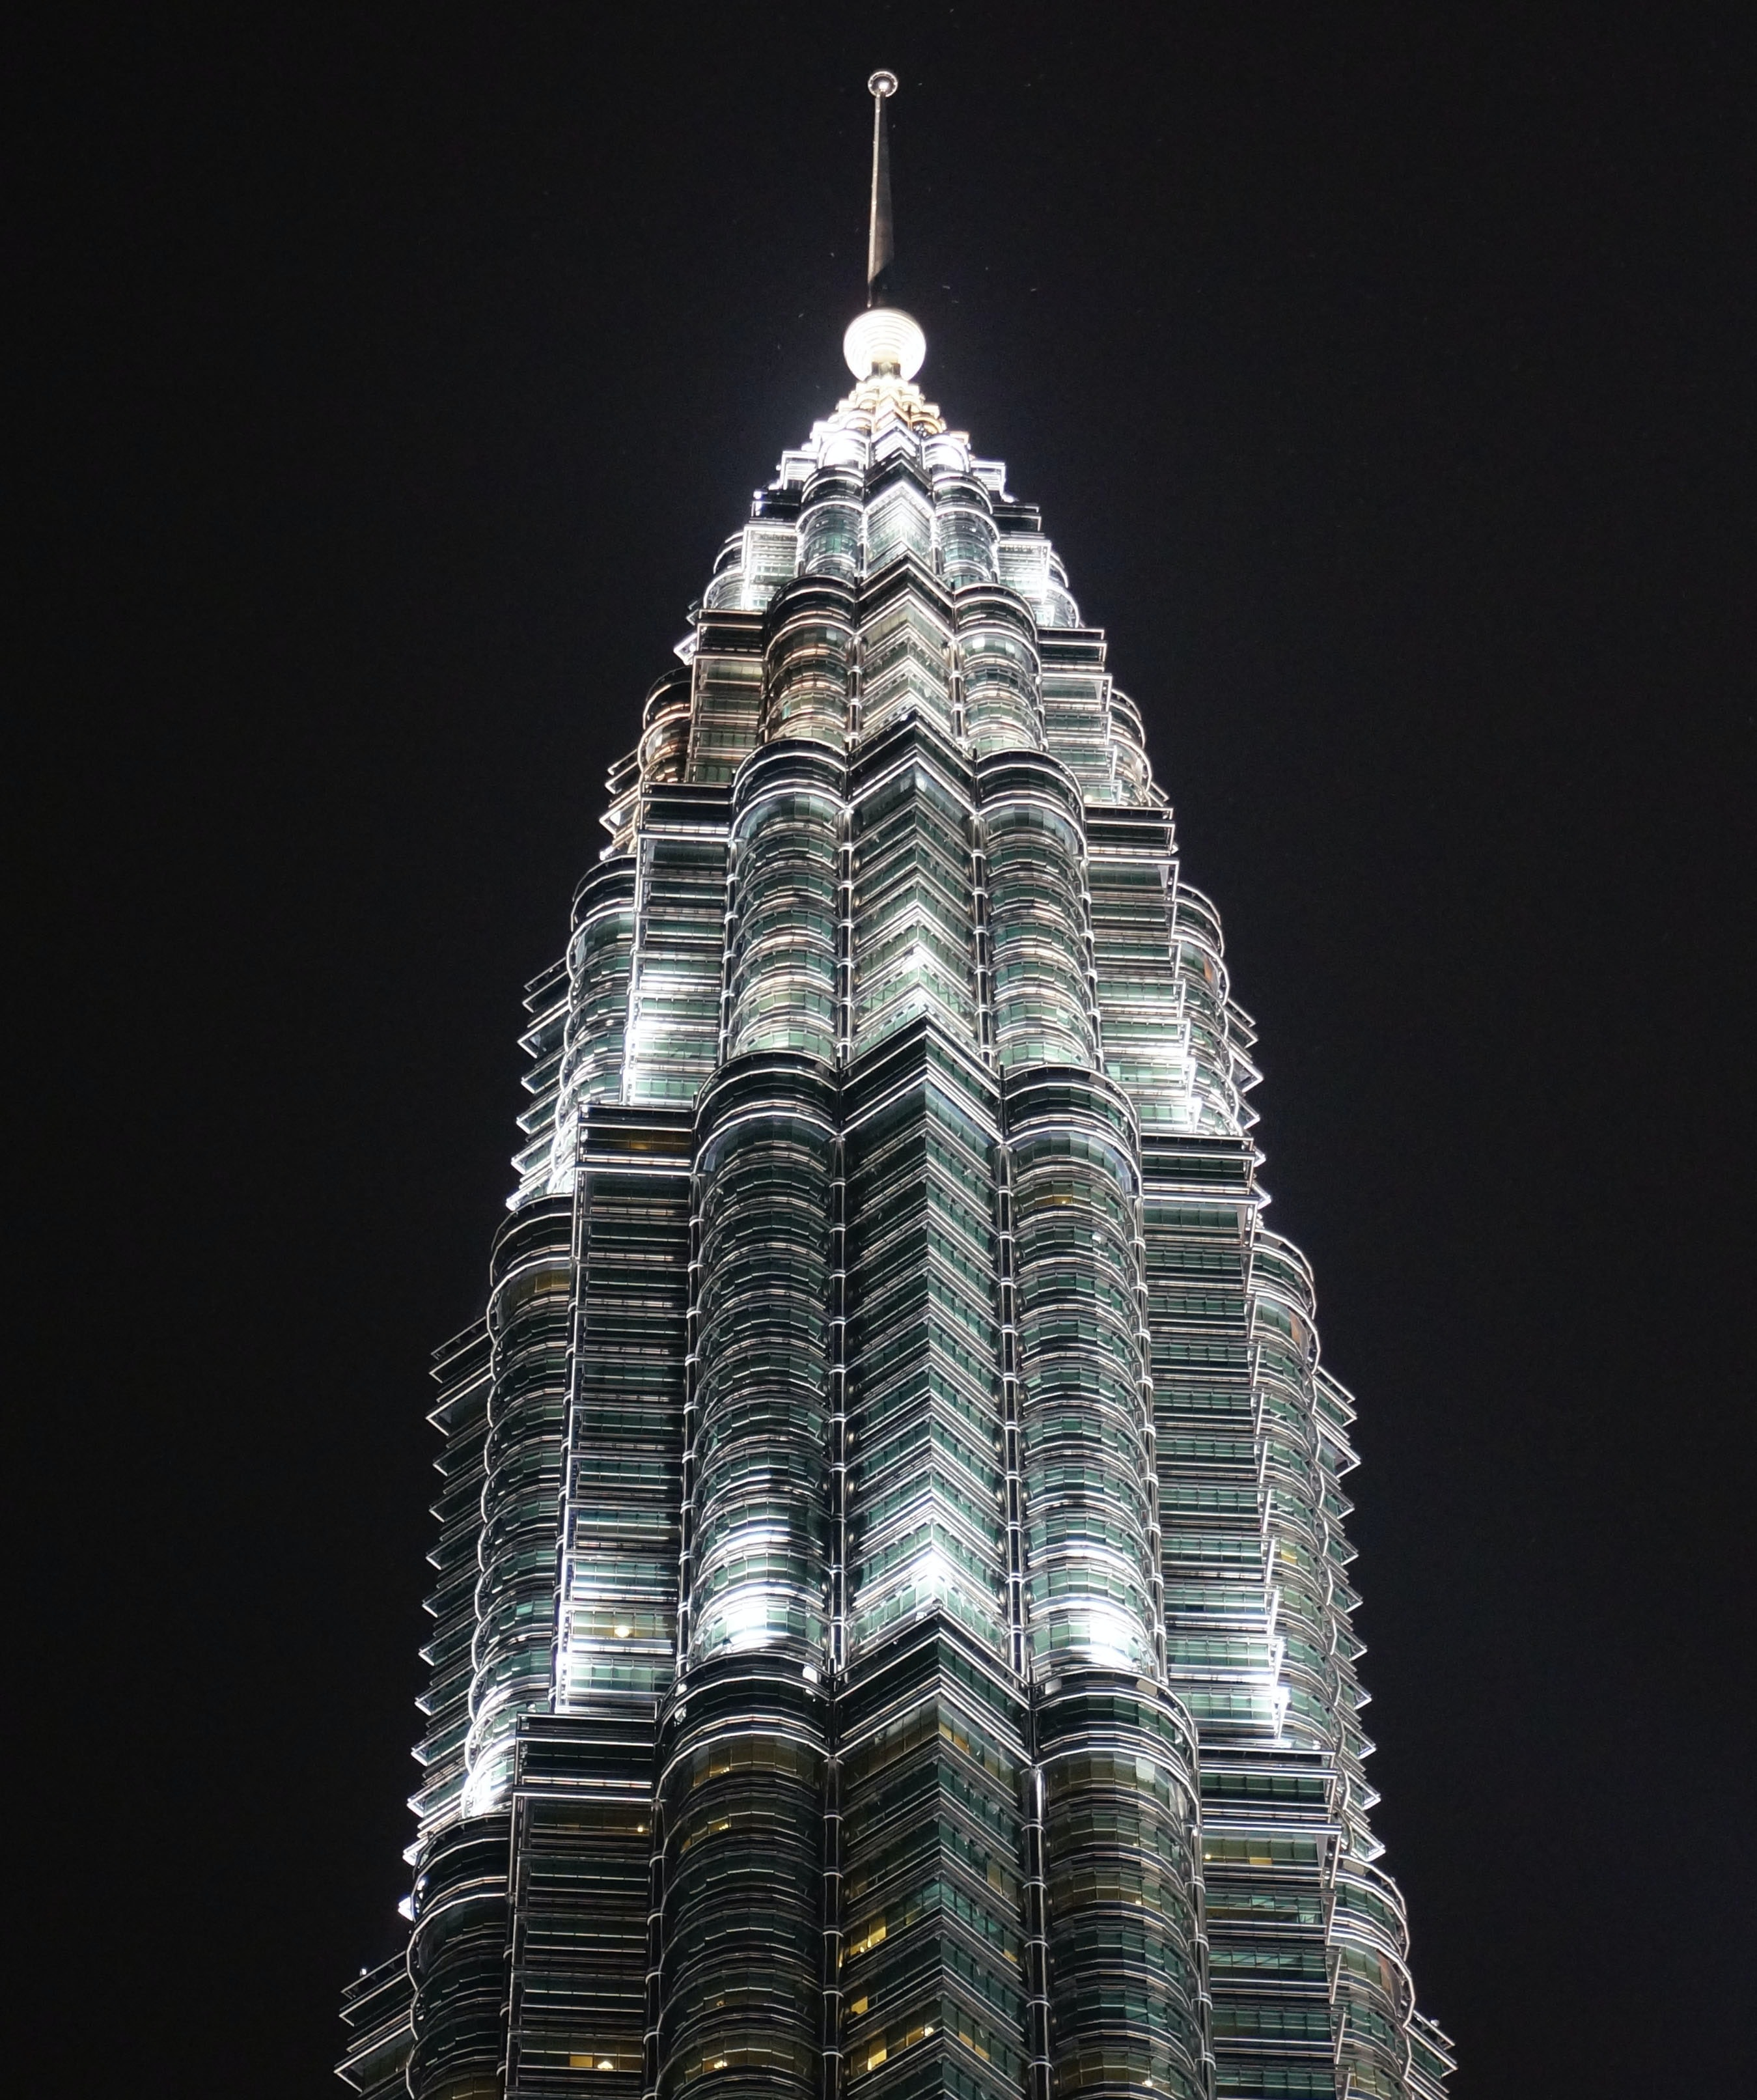 high-rise gray building at nighttime